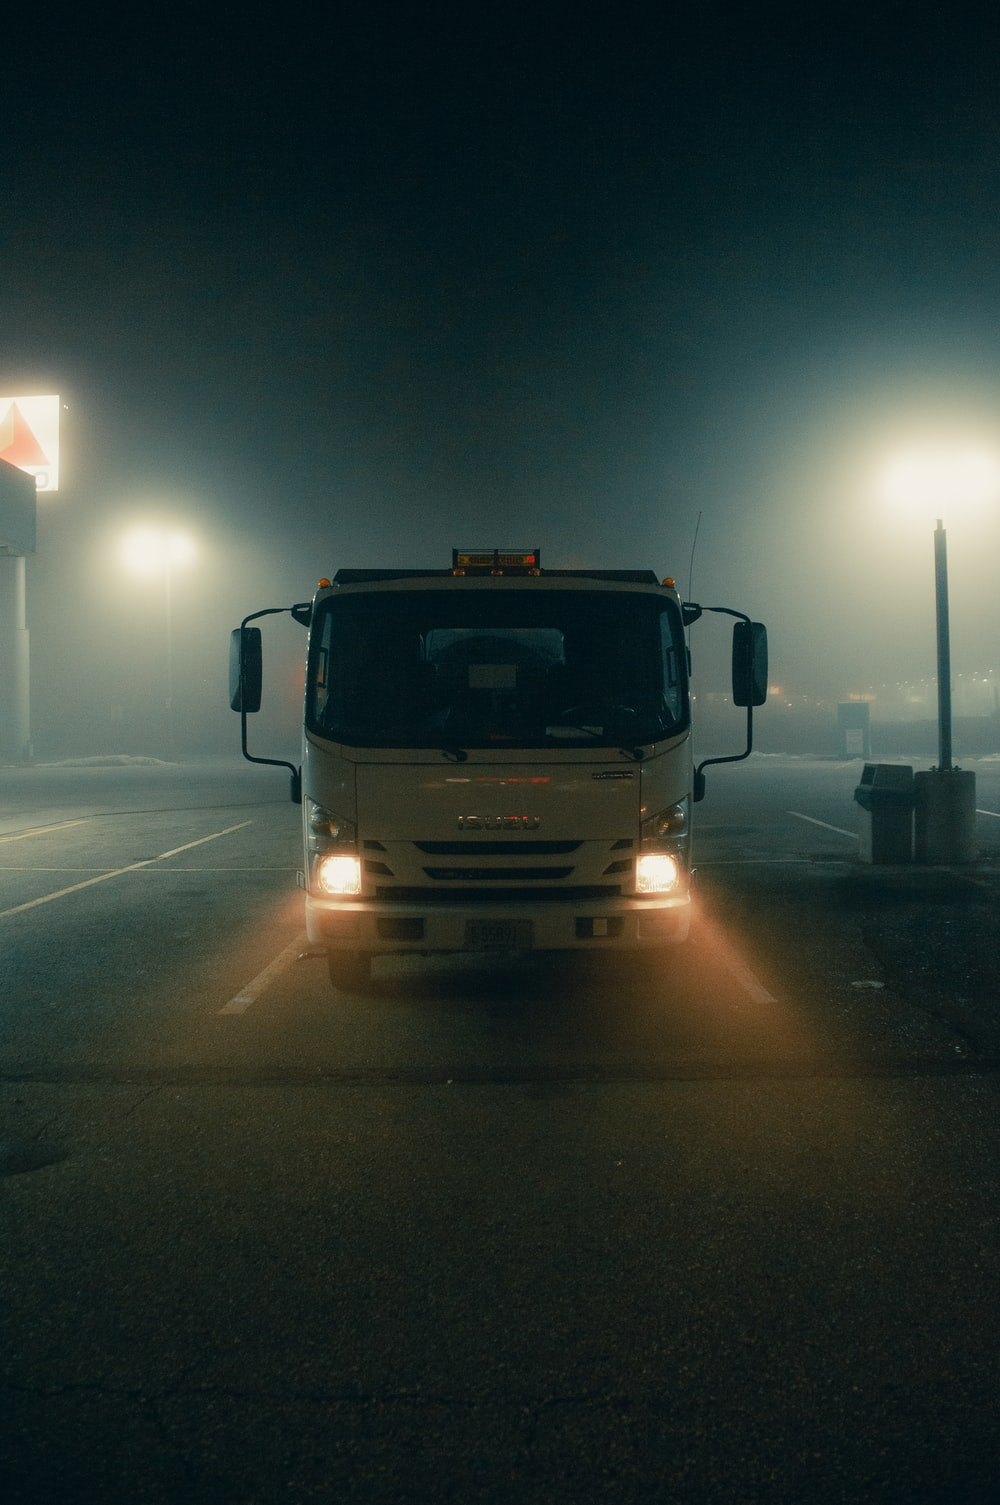 white truck on road during night time